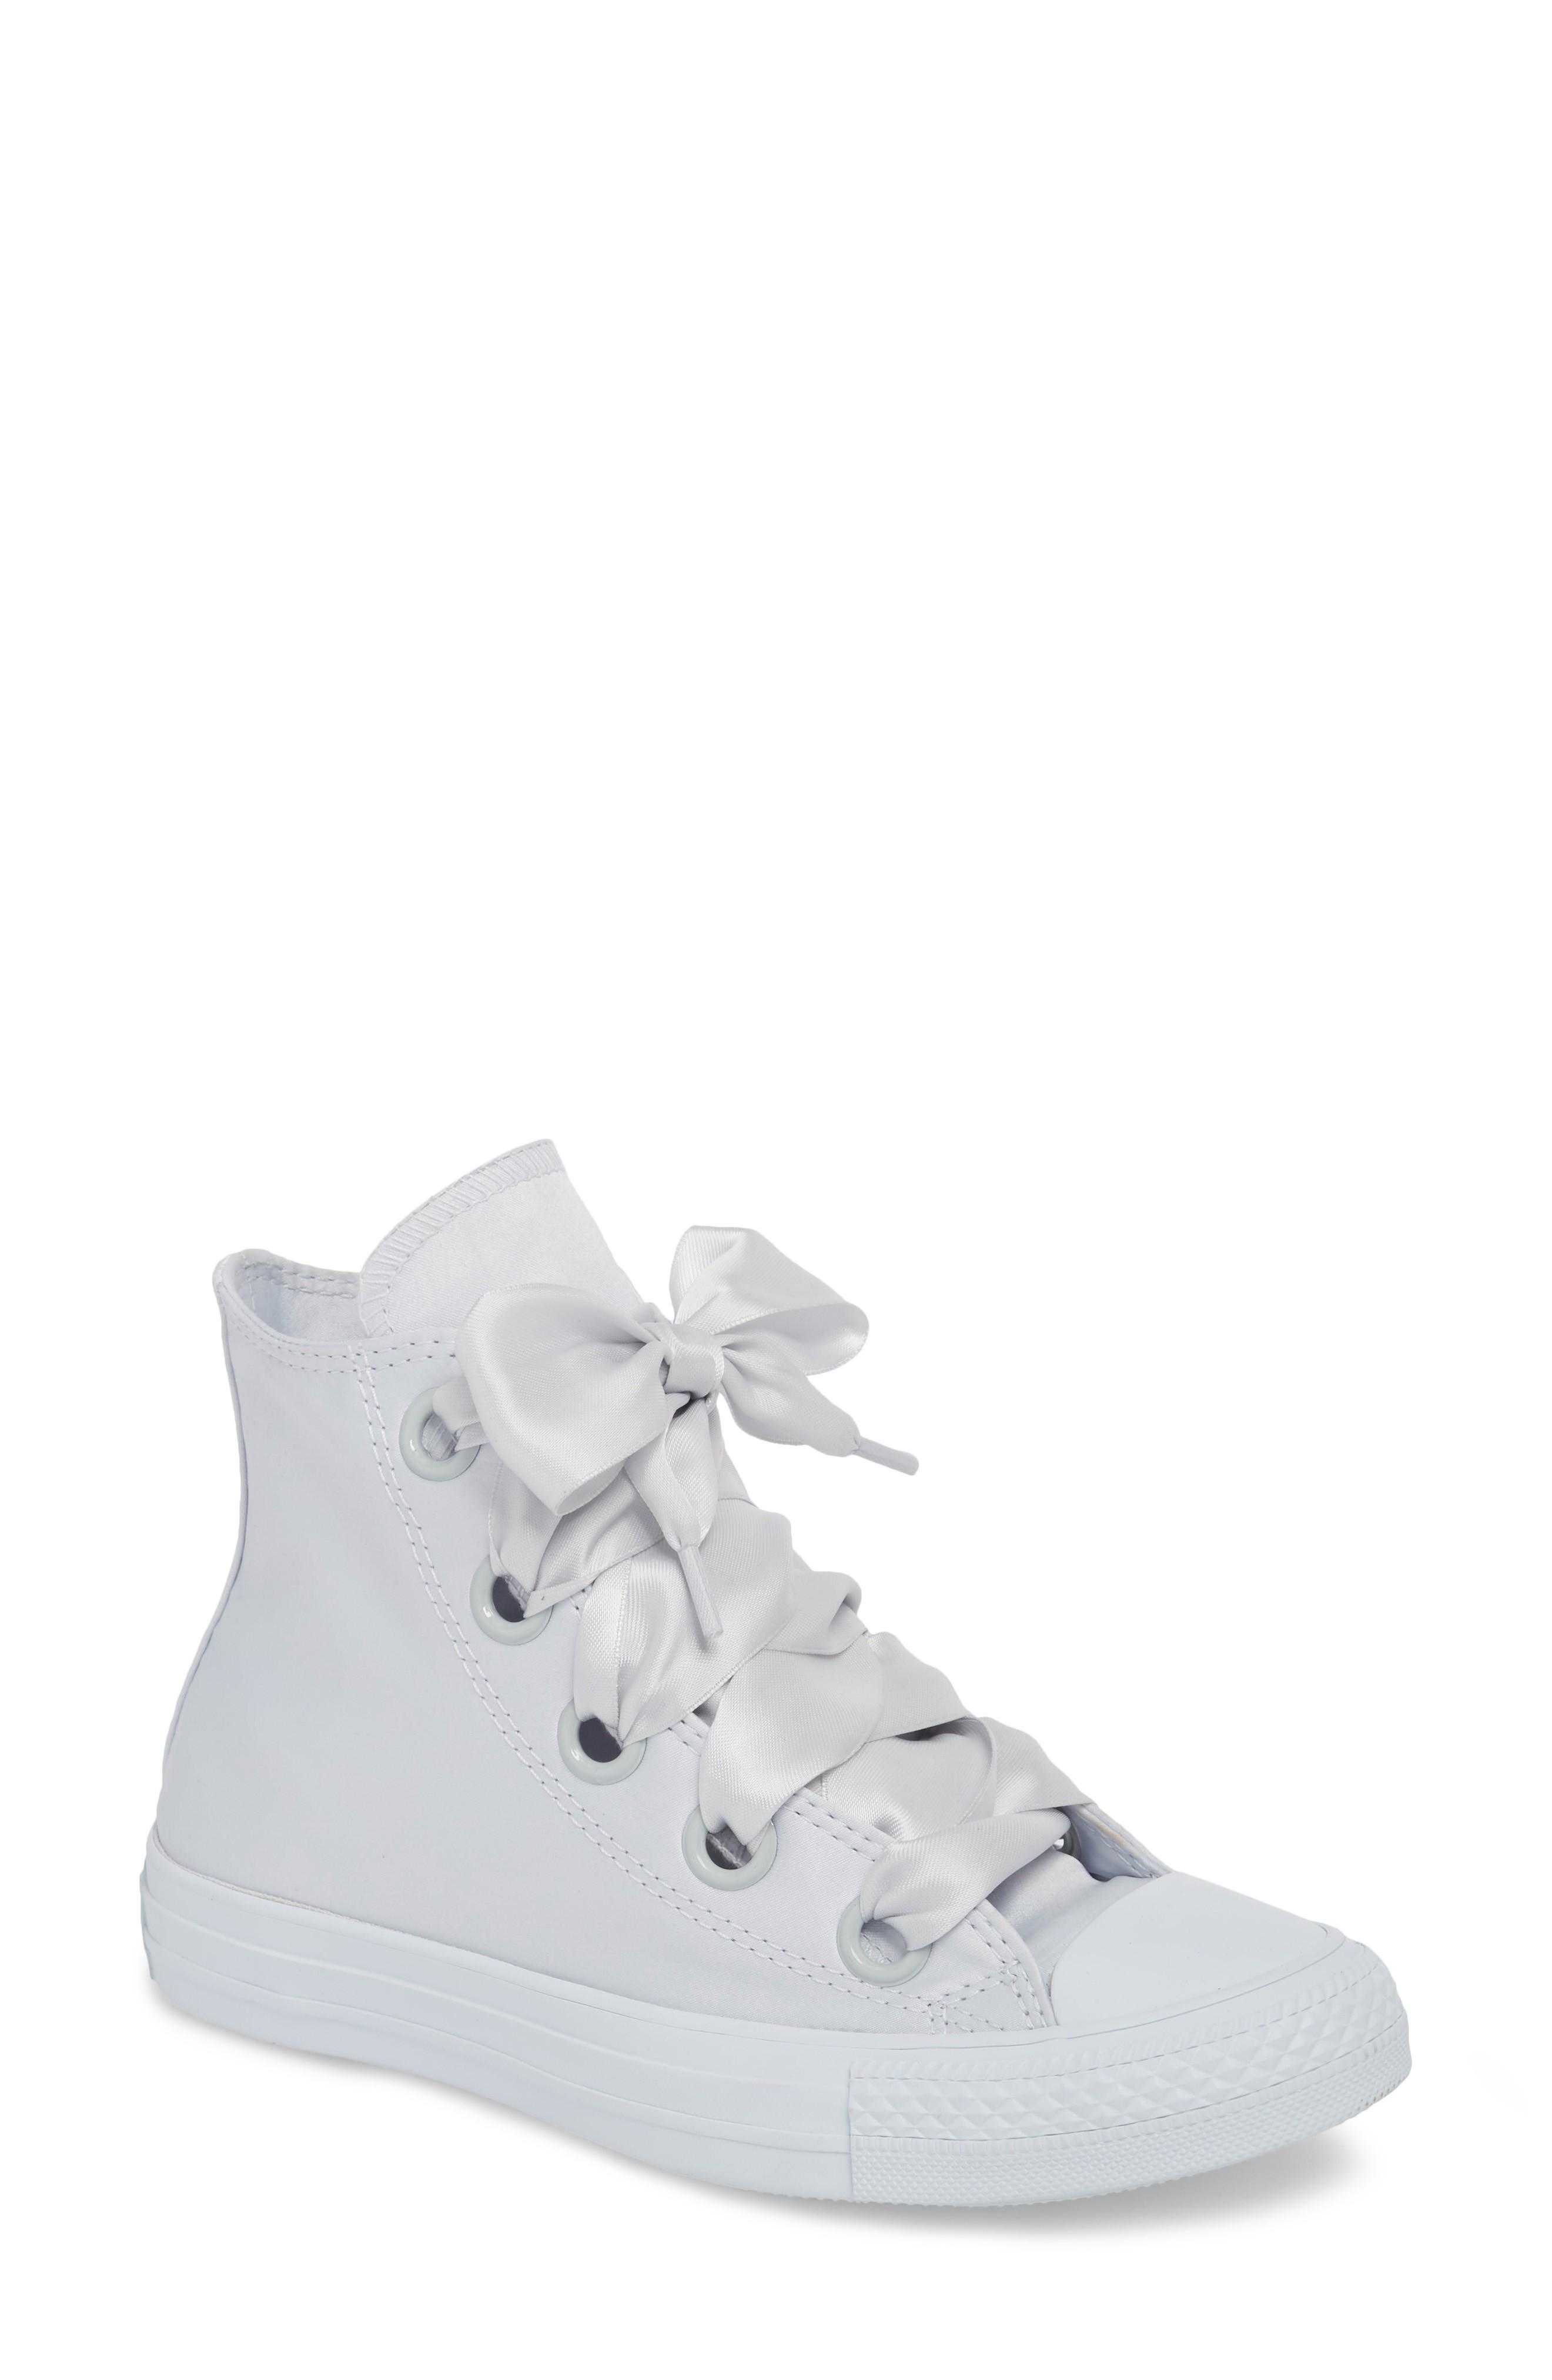 c60ef2750b57 Converse Chuck Taylor All Star Big Eyelet High Top Sneaker In Pure Platinum